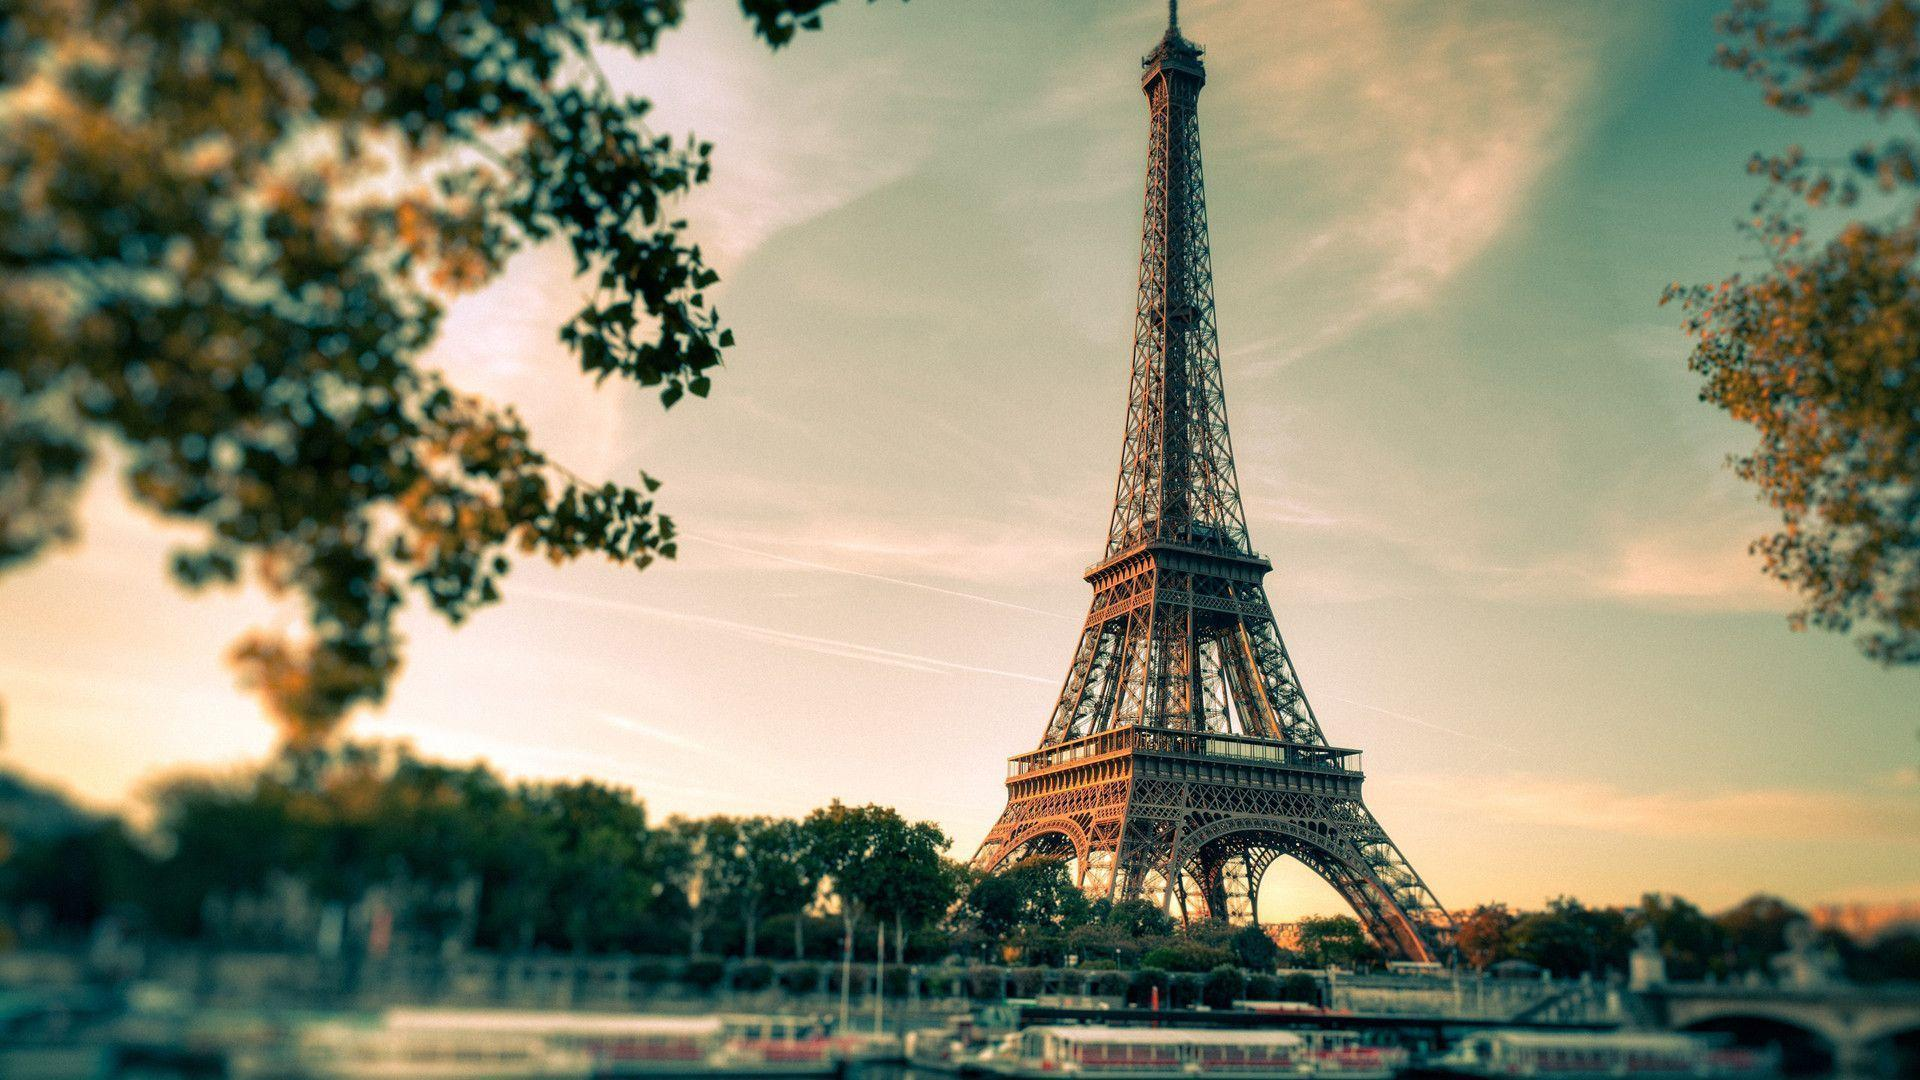 Paris Desktop Wallpapers and Background